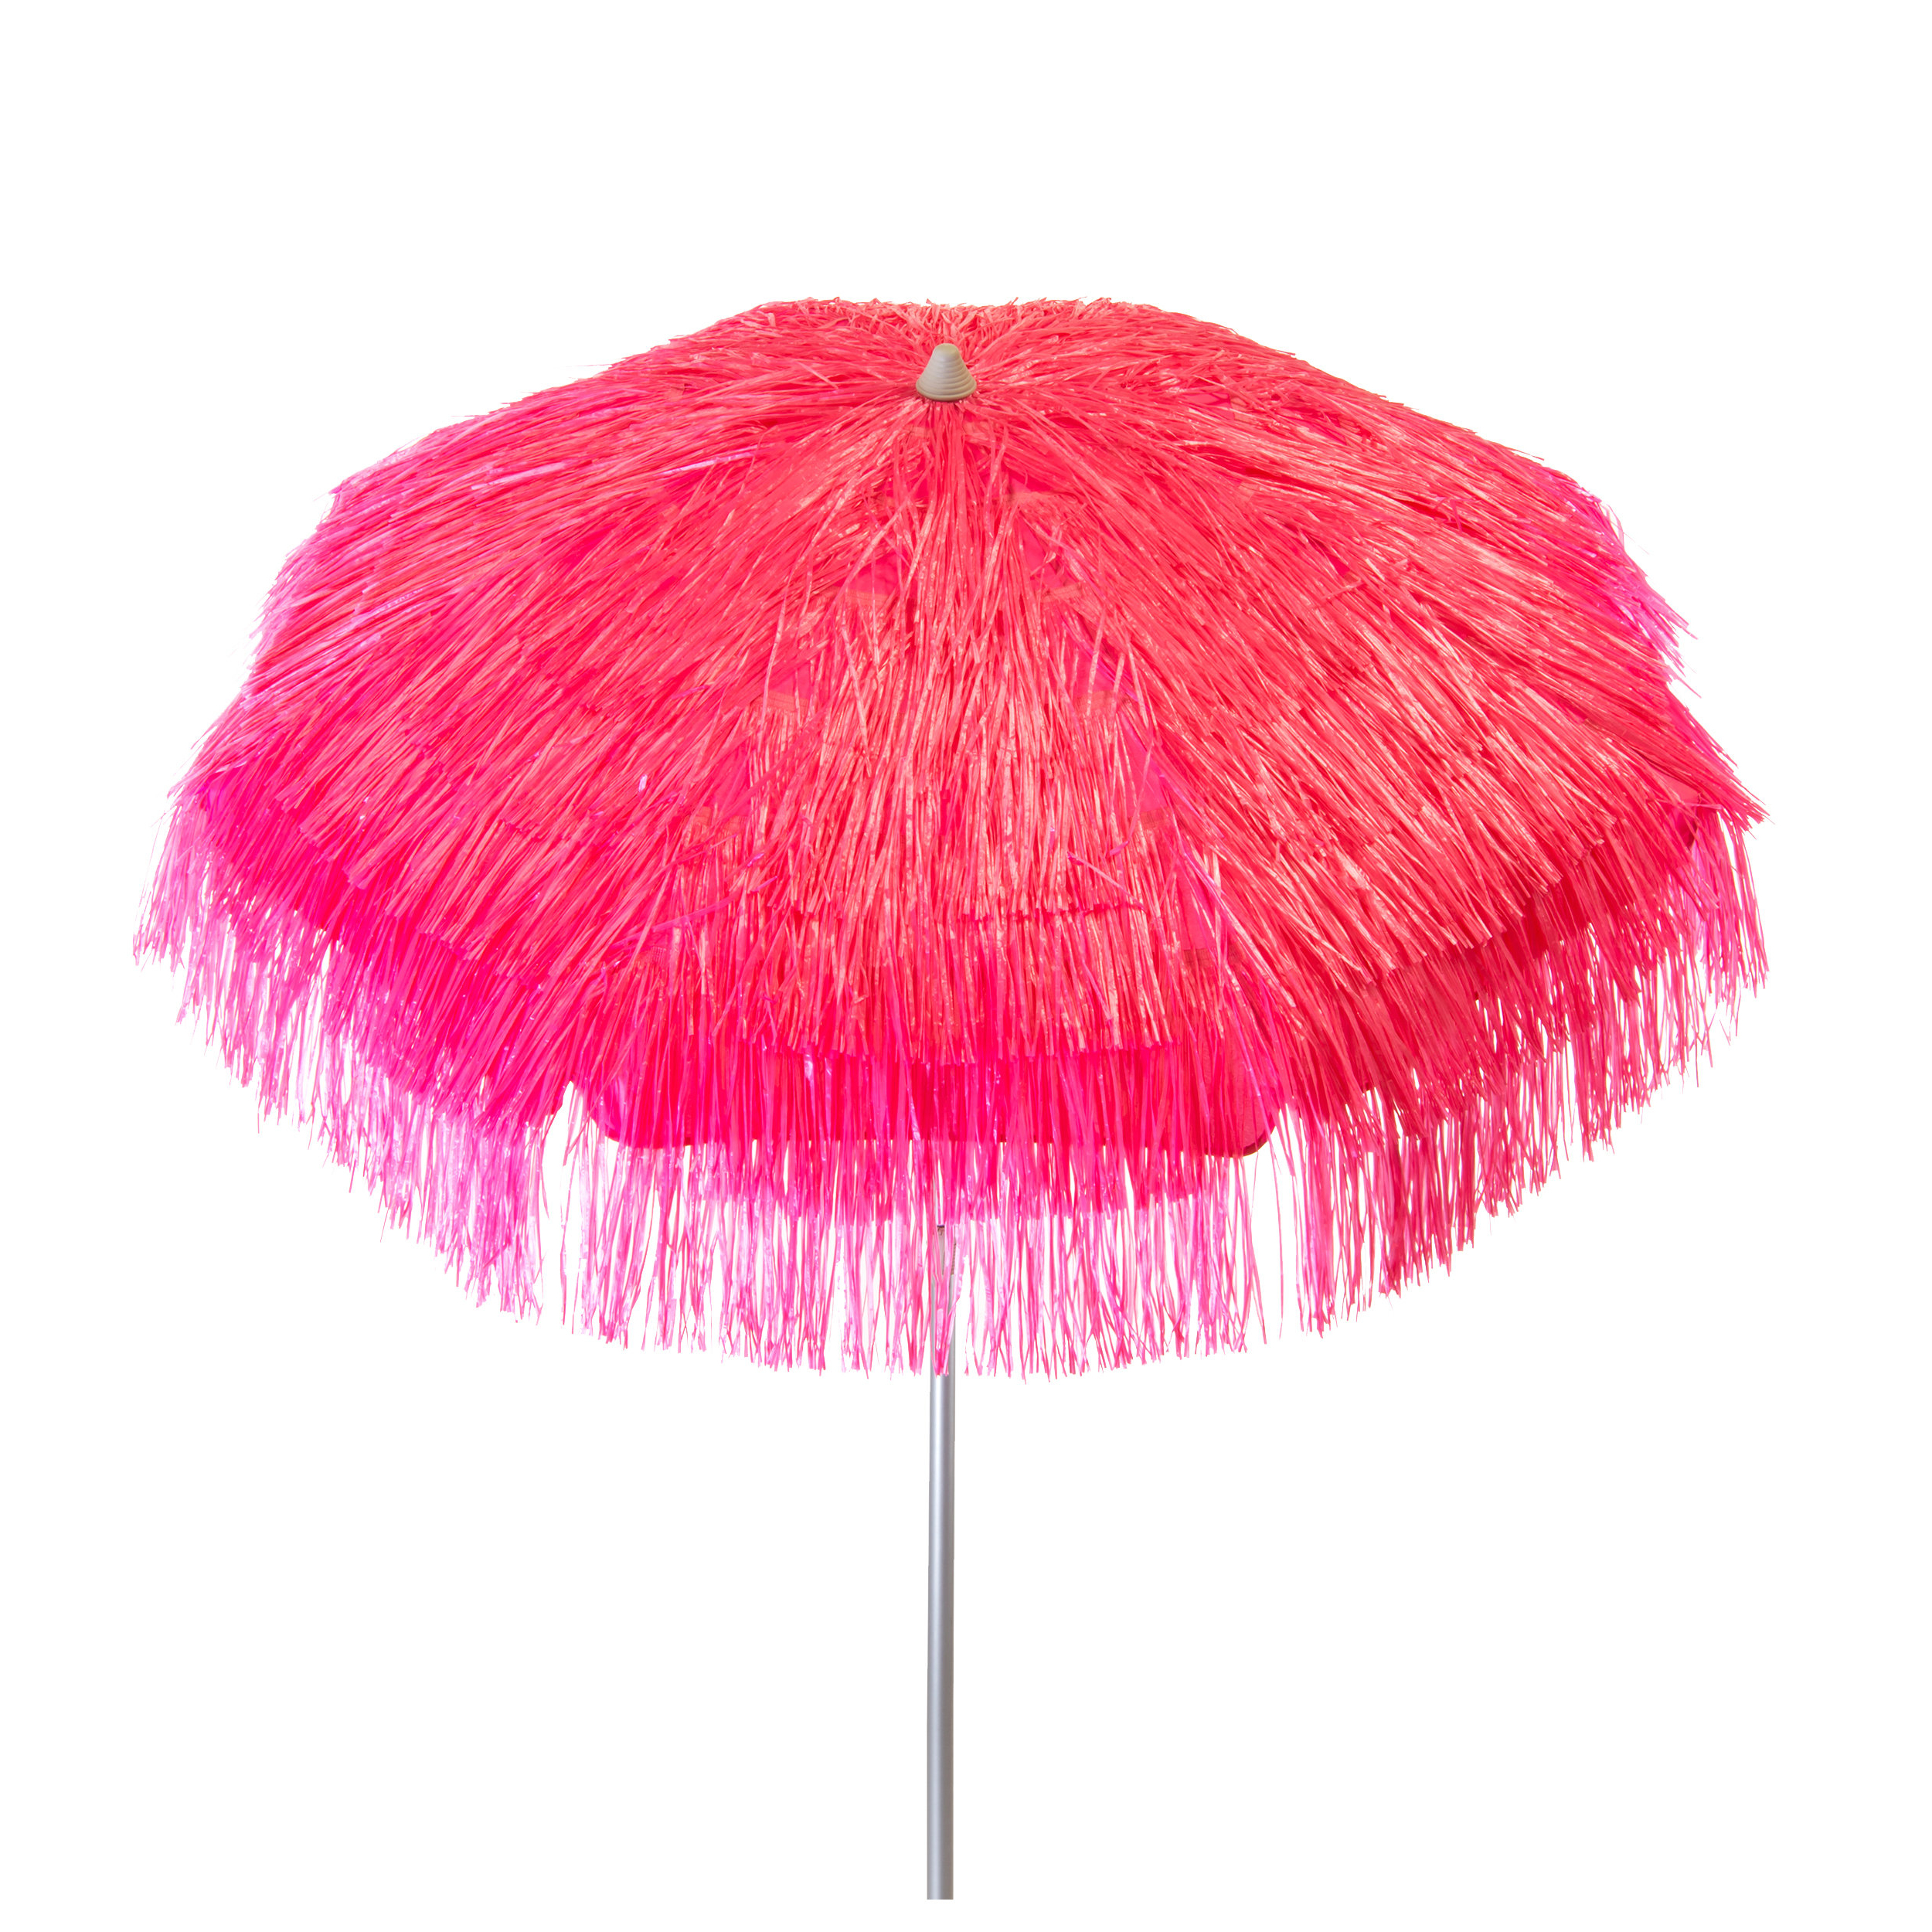 Palapa 6' Beach Umbrella With Regard To Newest Maglione Fabric 4cantilever Umbrellas (View 11 of 20)